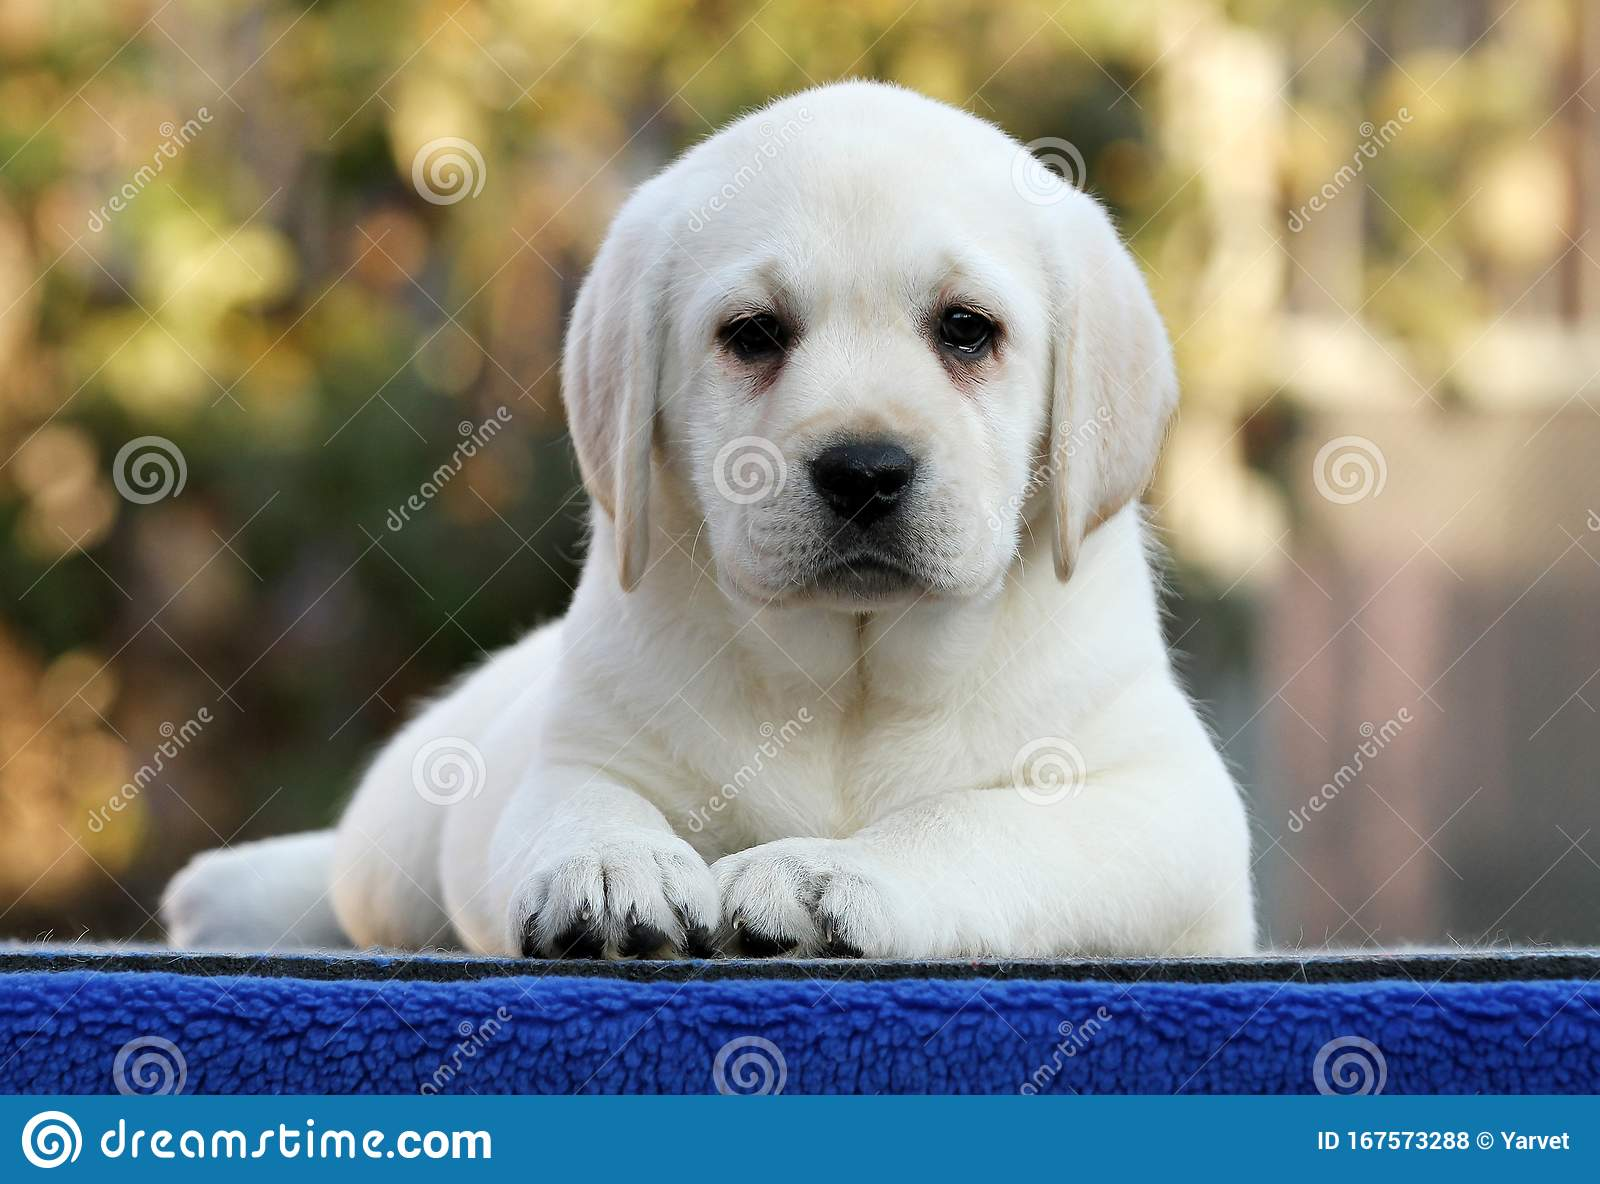 The Nice Labrador Puppy On A Blue Background Stock Photo Image Of Puppy Pale 167573288